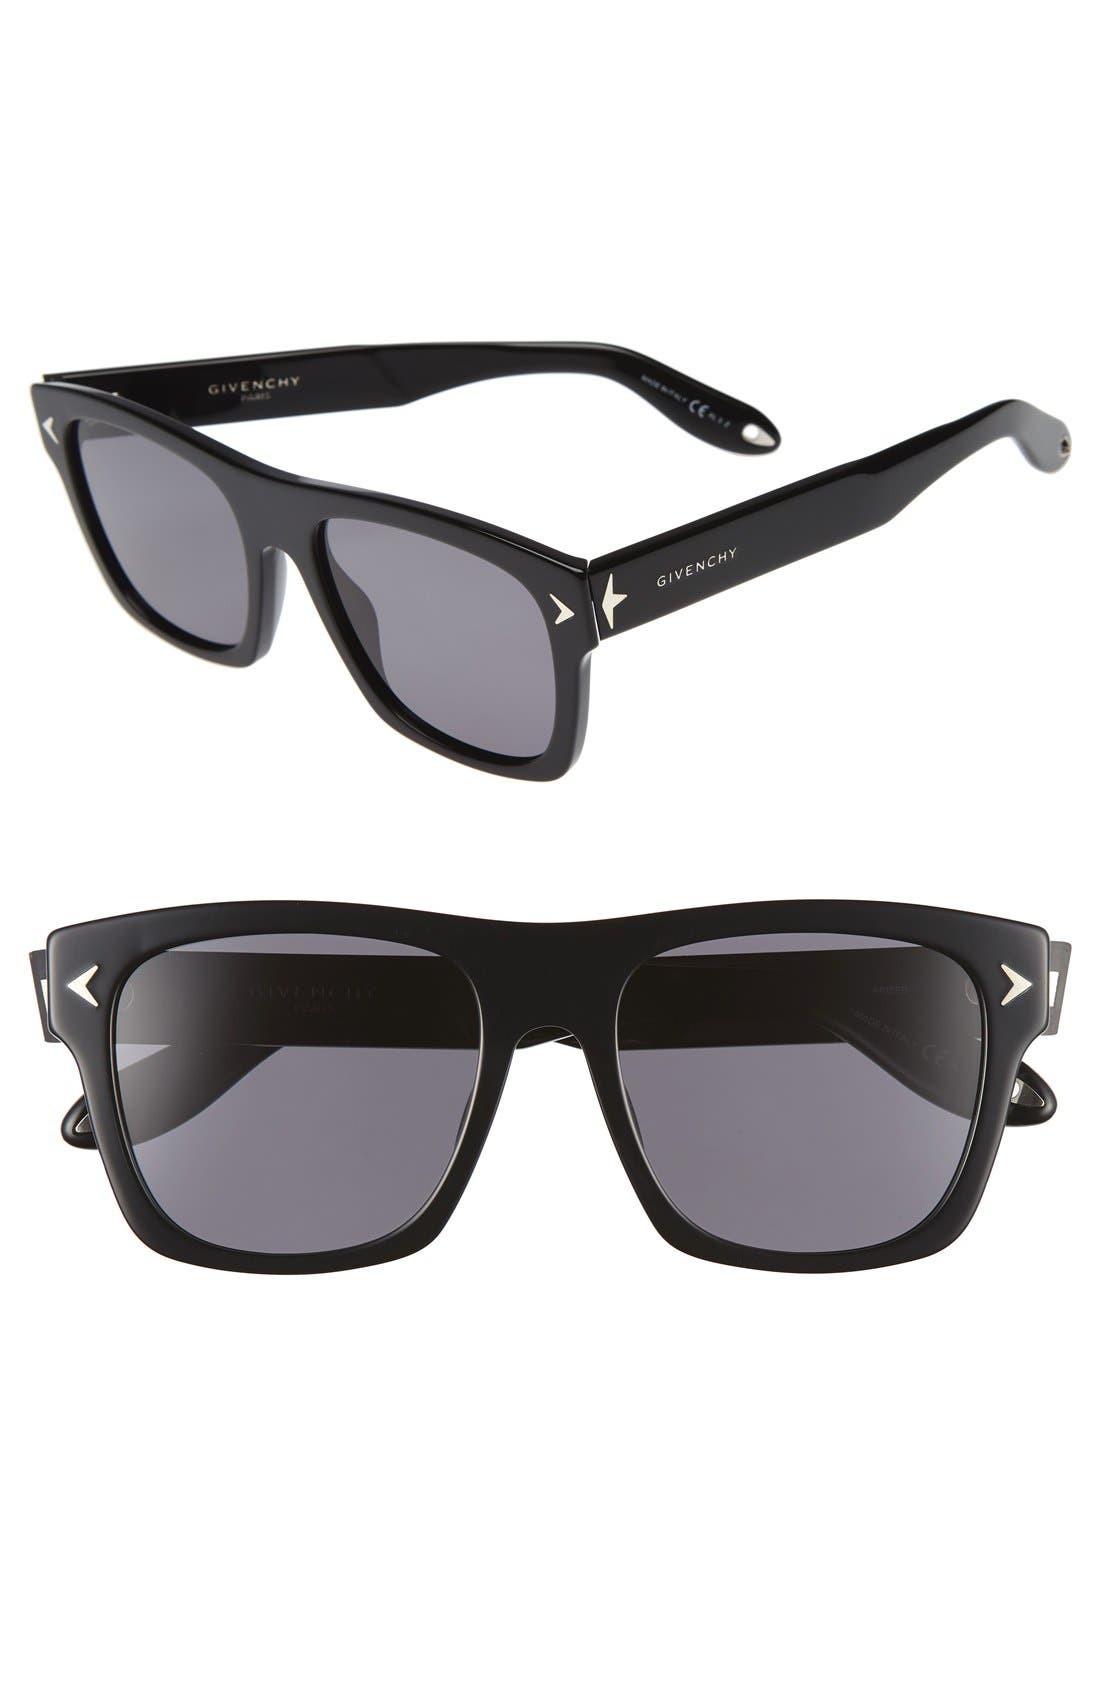 Givenchy 55mm Polarized Retro Sunglasses